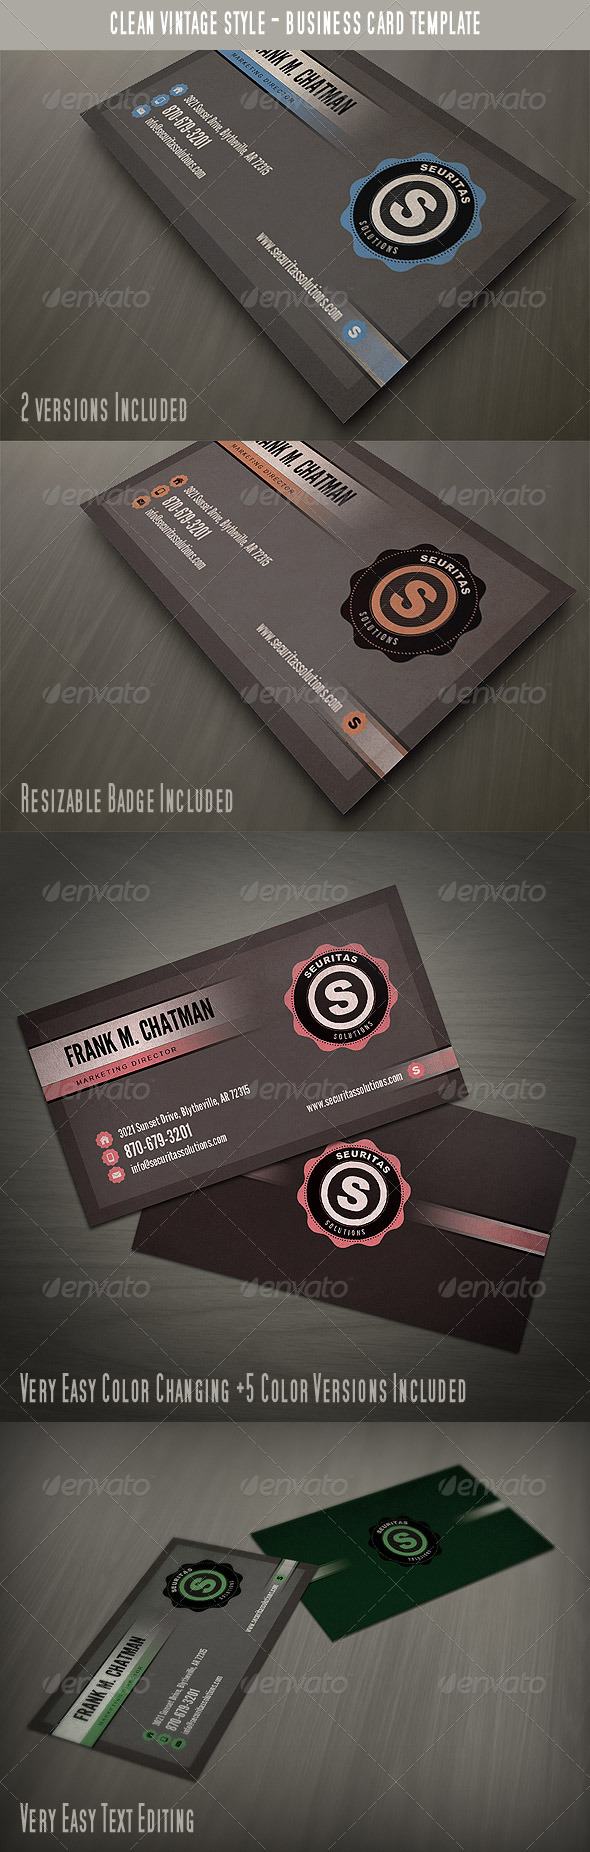 Clean Vintage Style Business Card - Corporate Business Cards